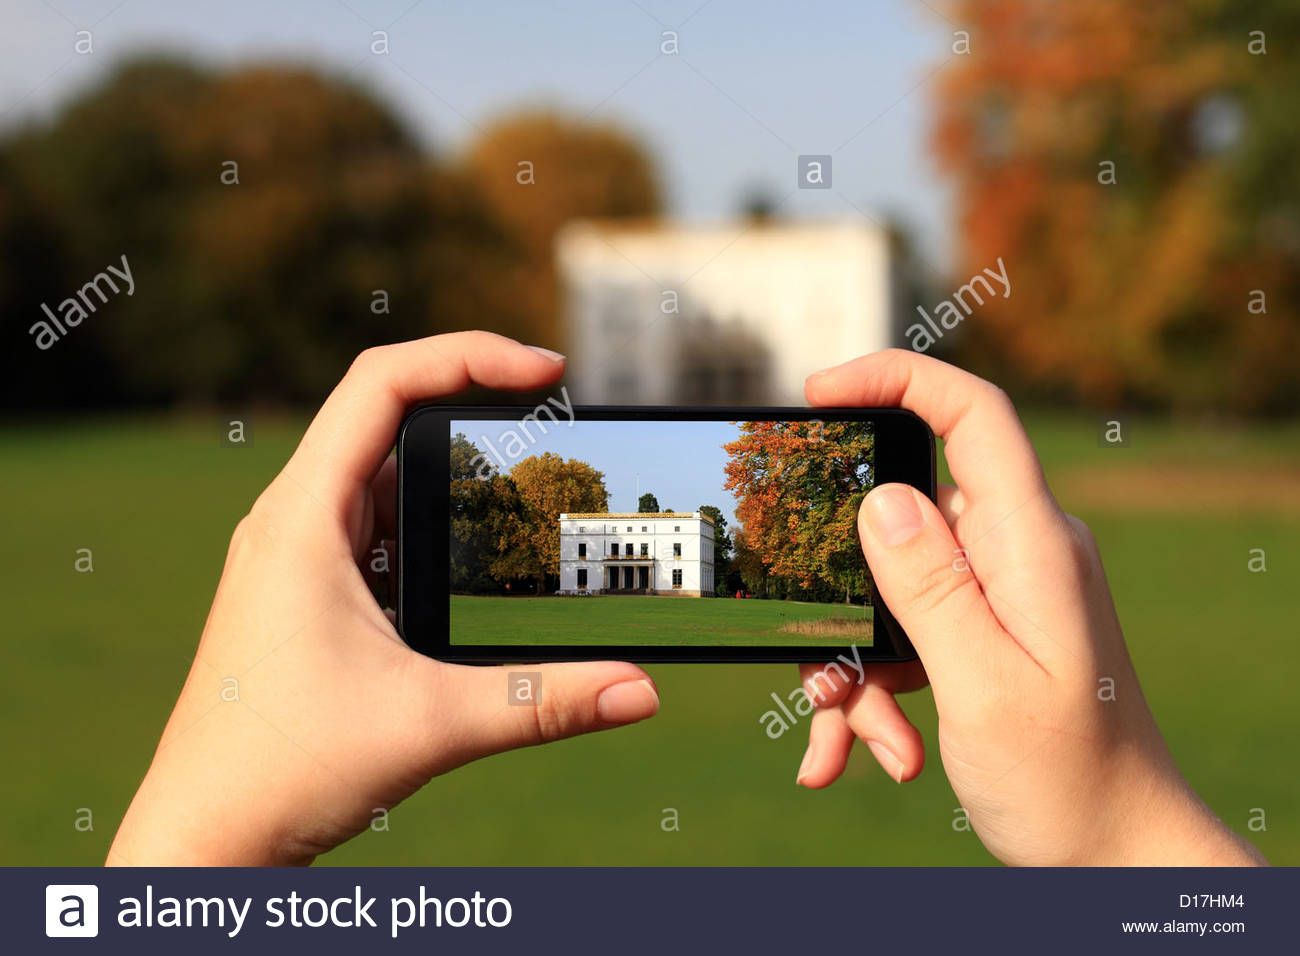 Hands taking picture with cell phone - Stock Image